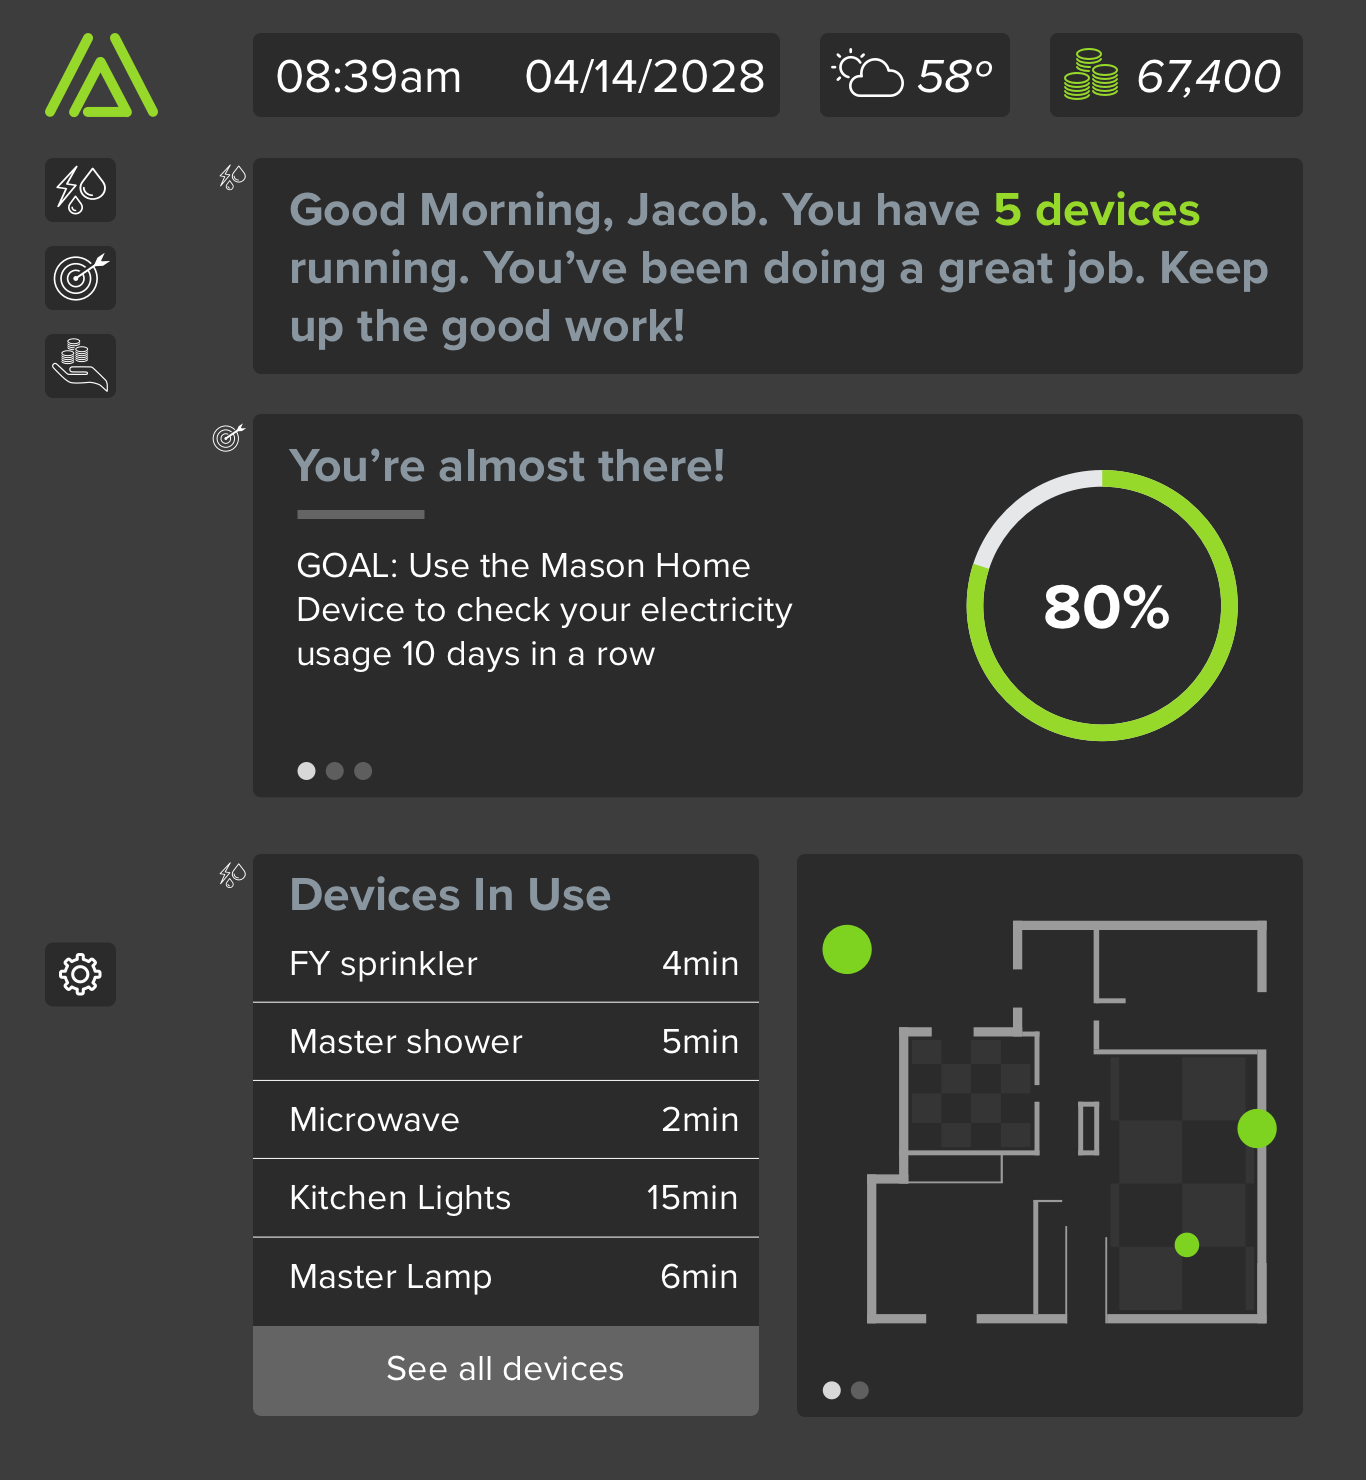 Home —  The home screen is where main notifications will go as well as a simplified version of the usage screens and goals. The interface is modular and would be customizable by the user.